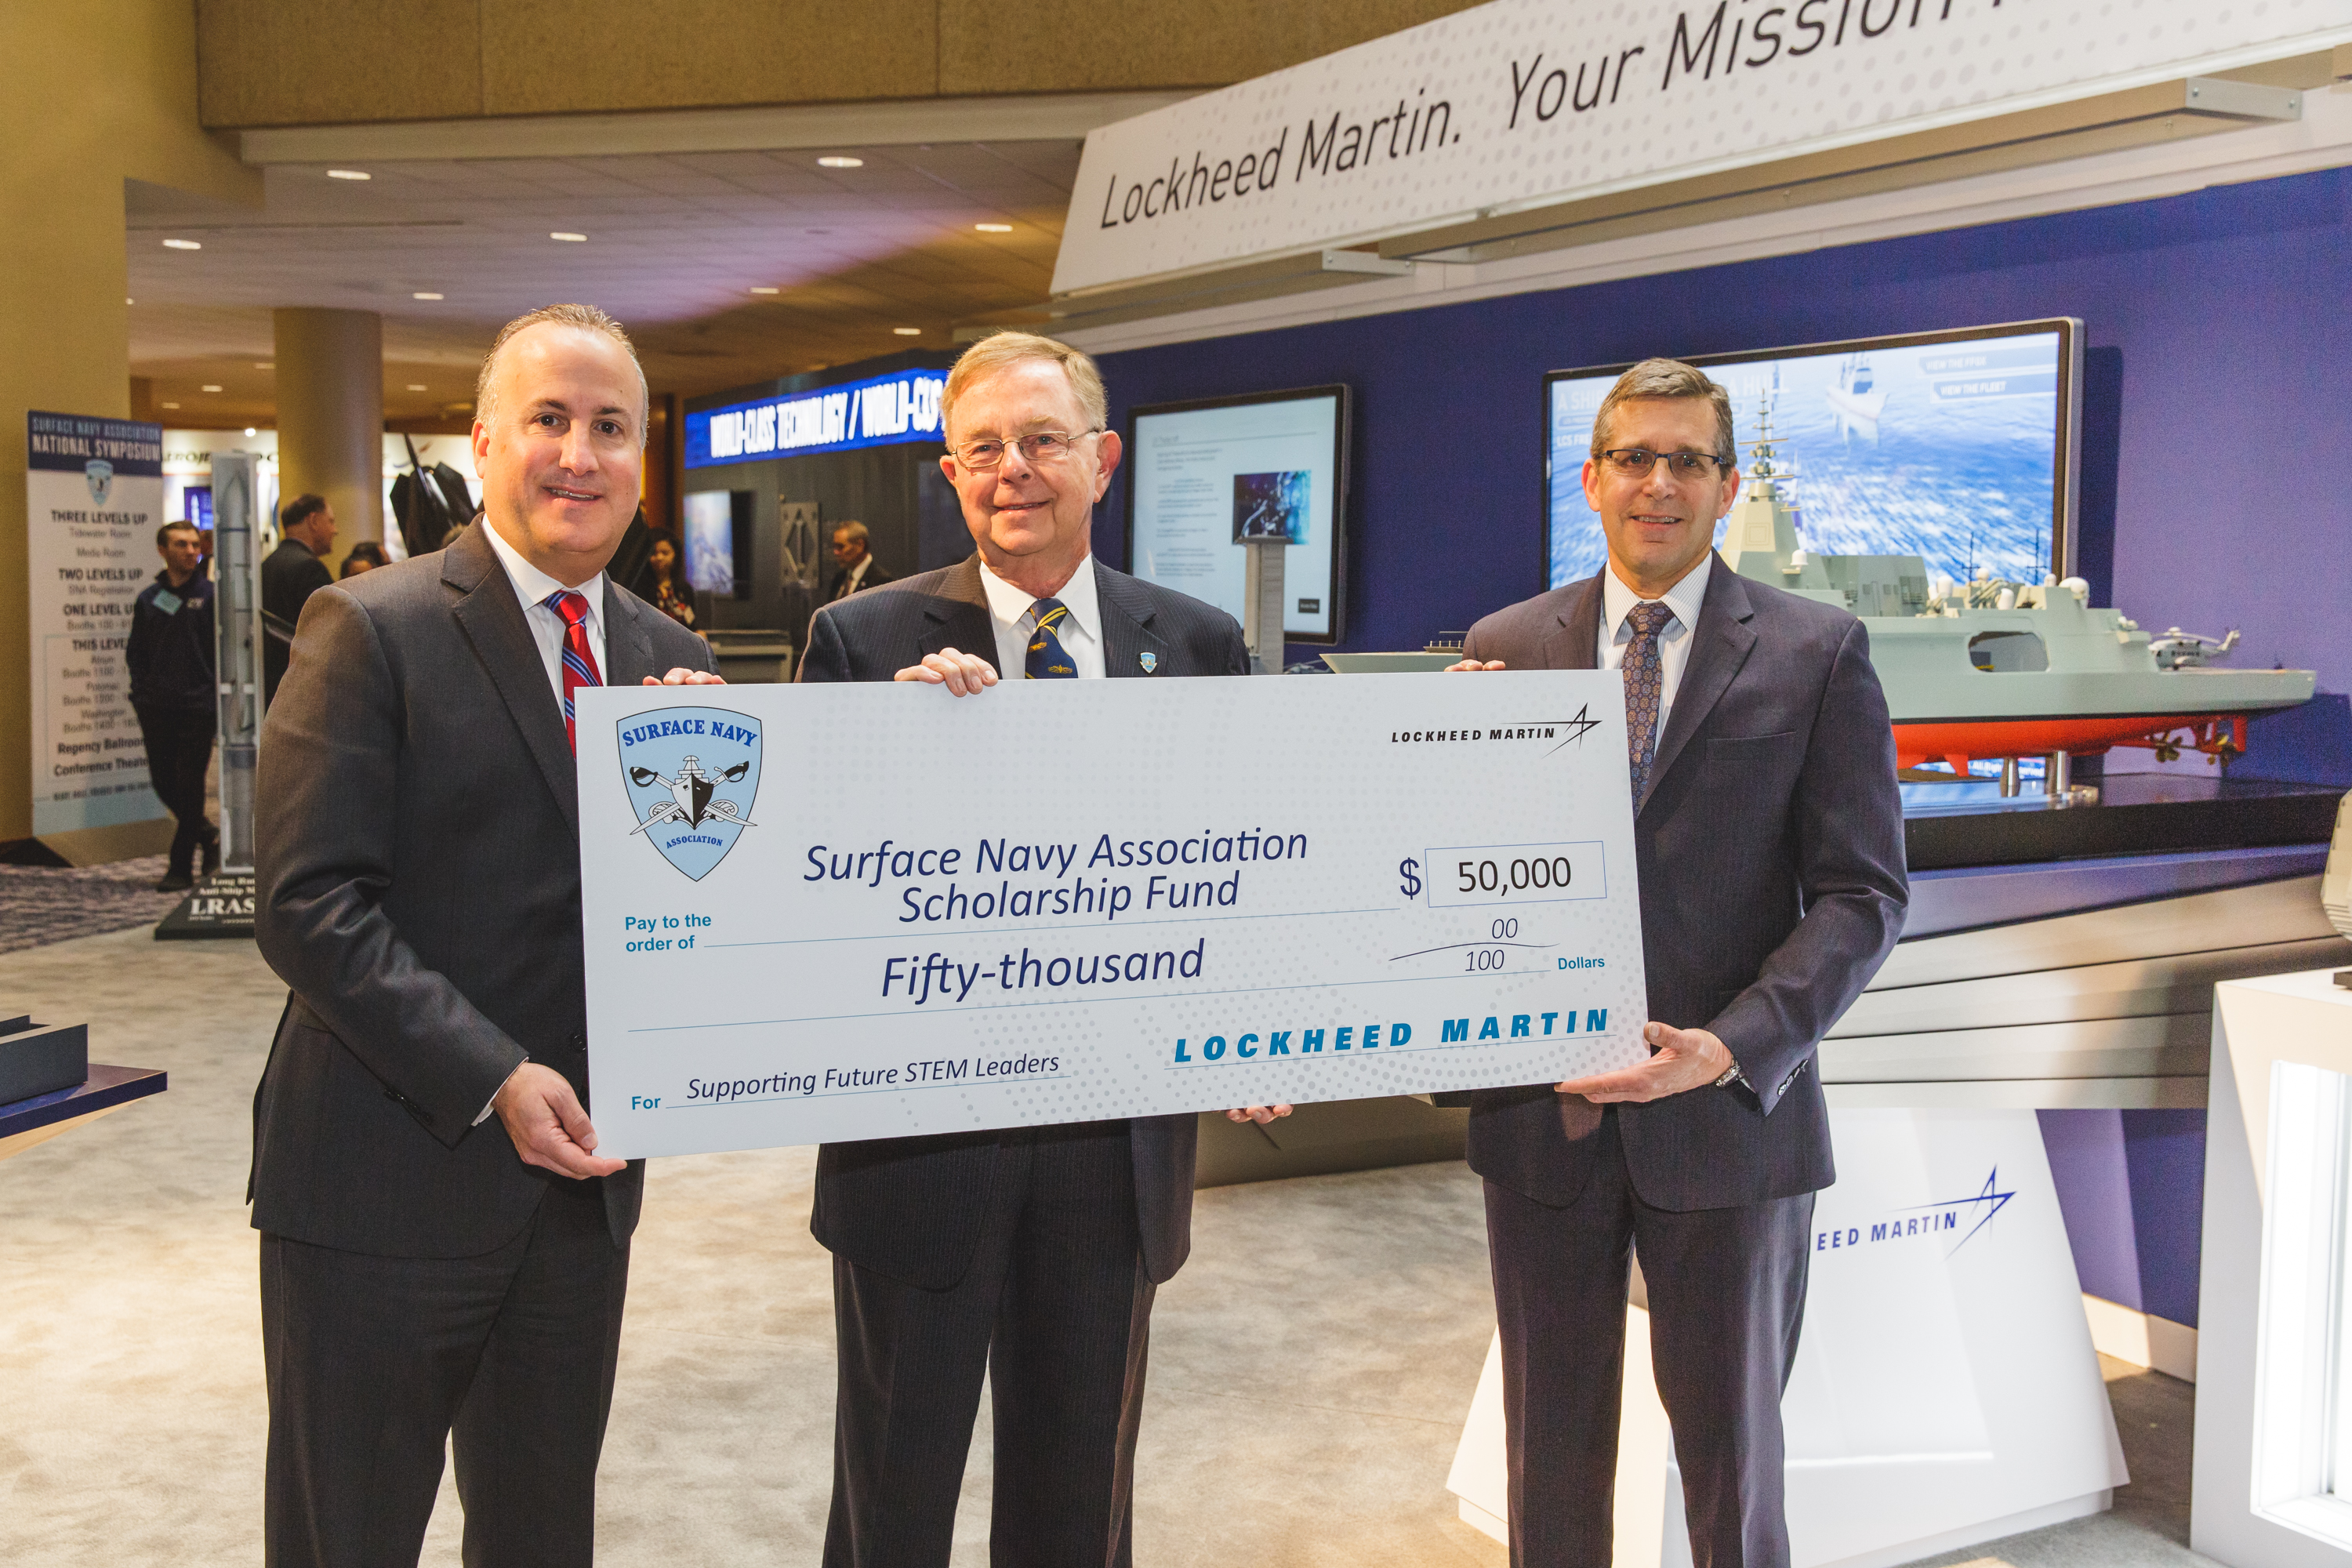 3 gentlemen holding a giant check